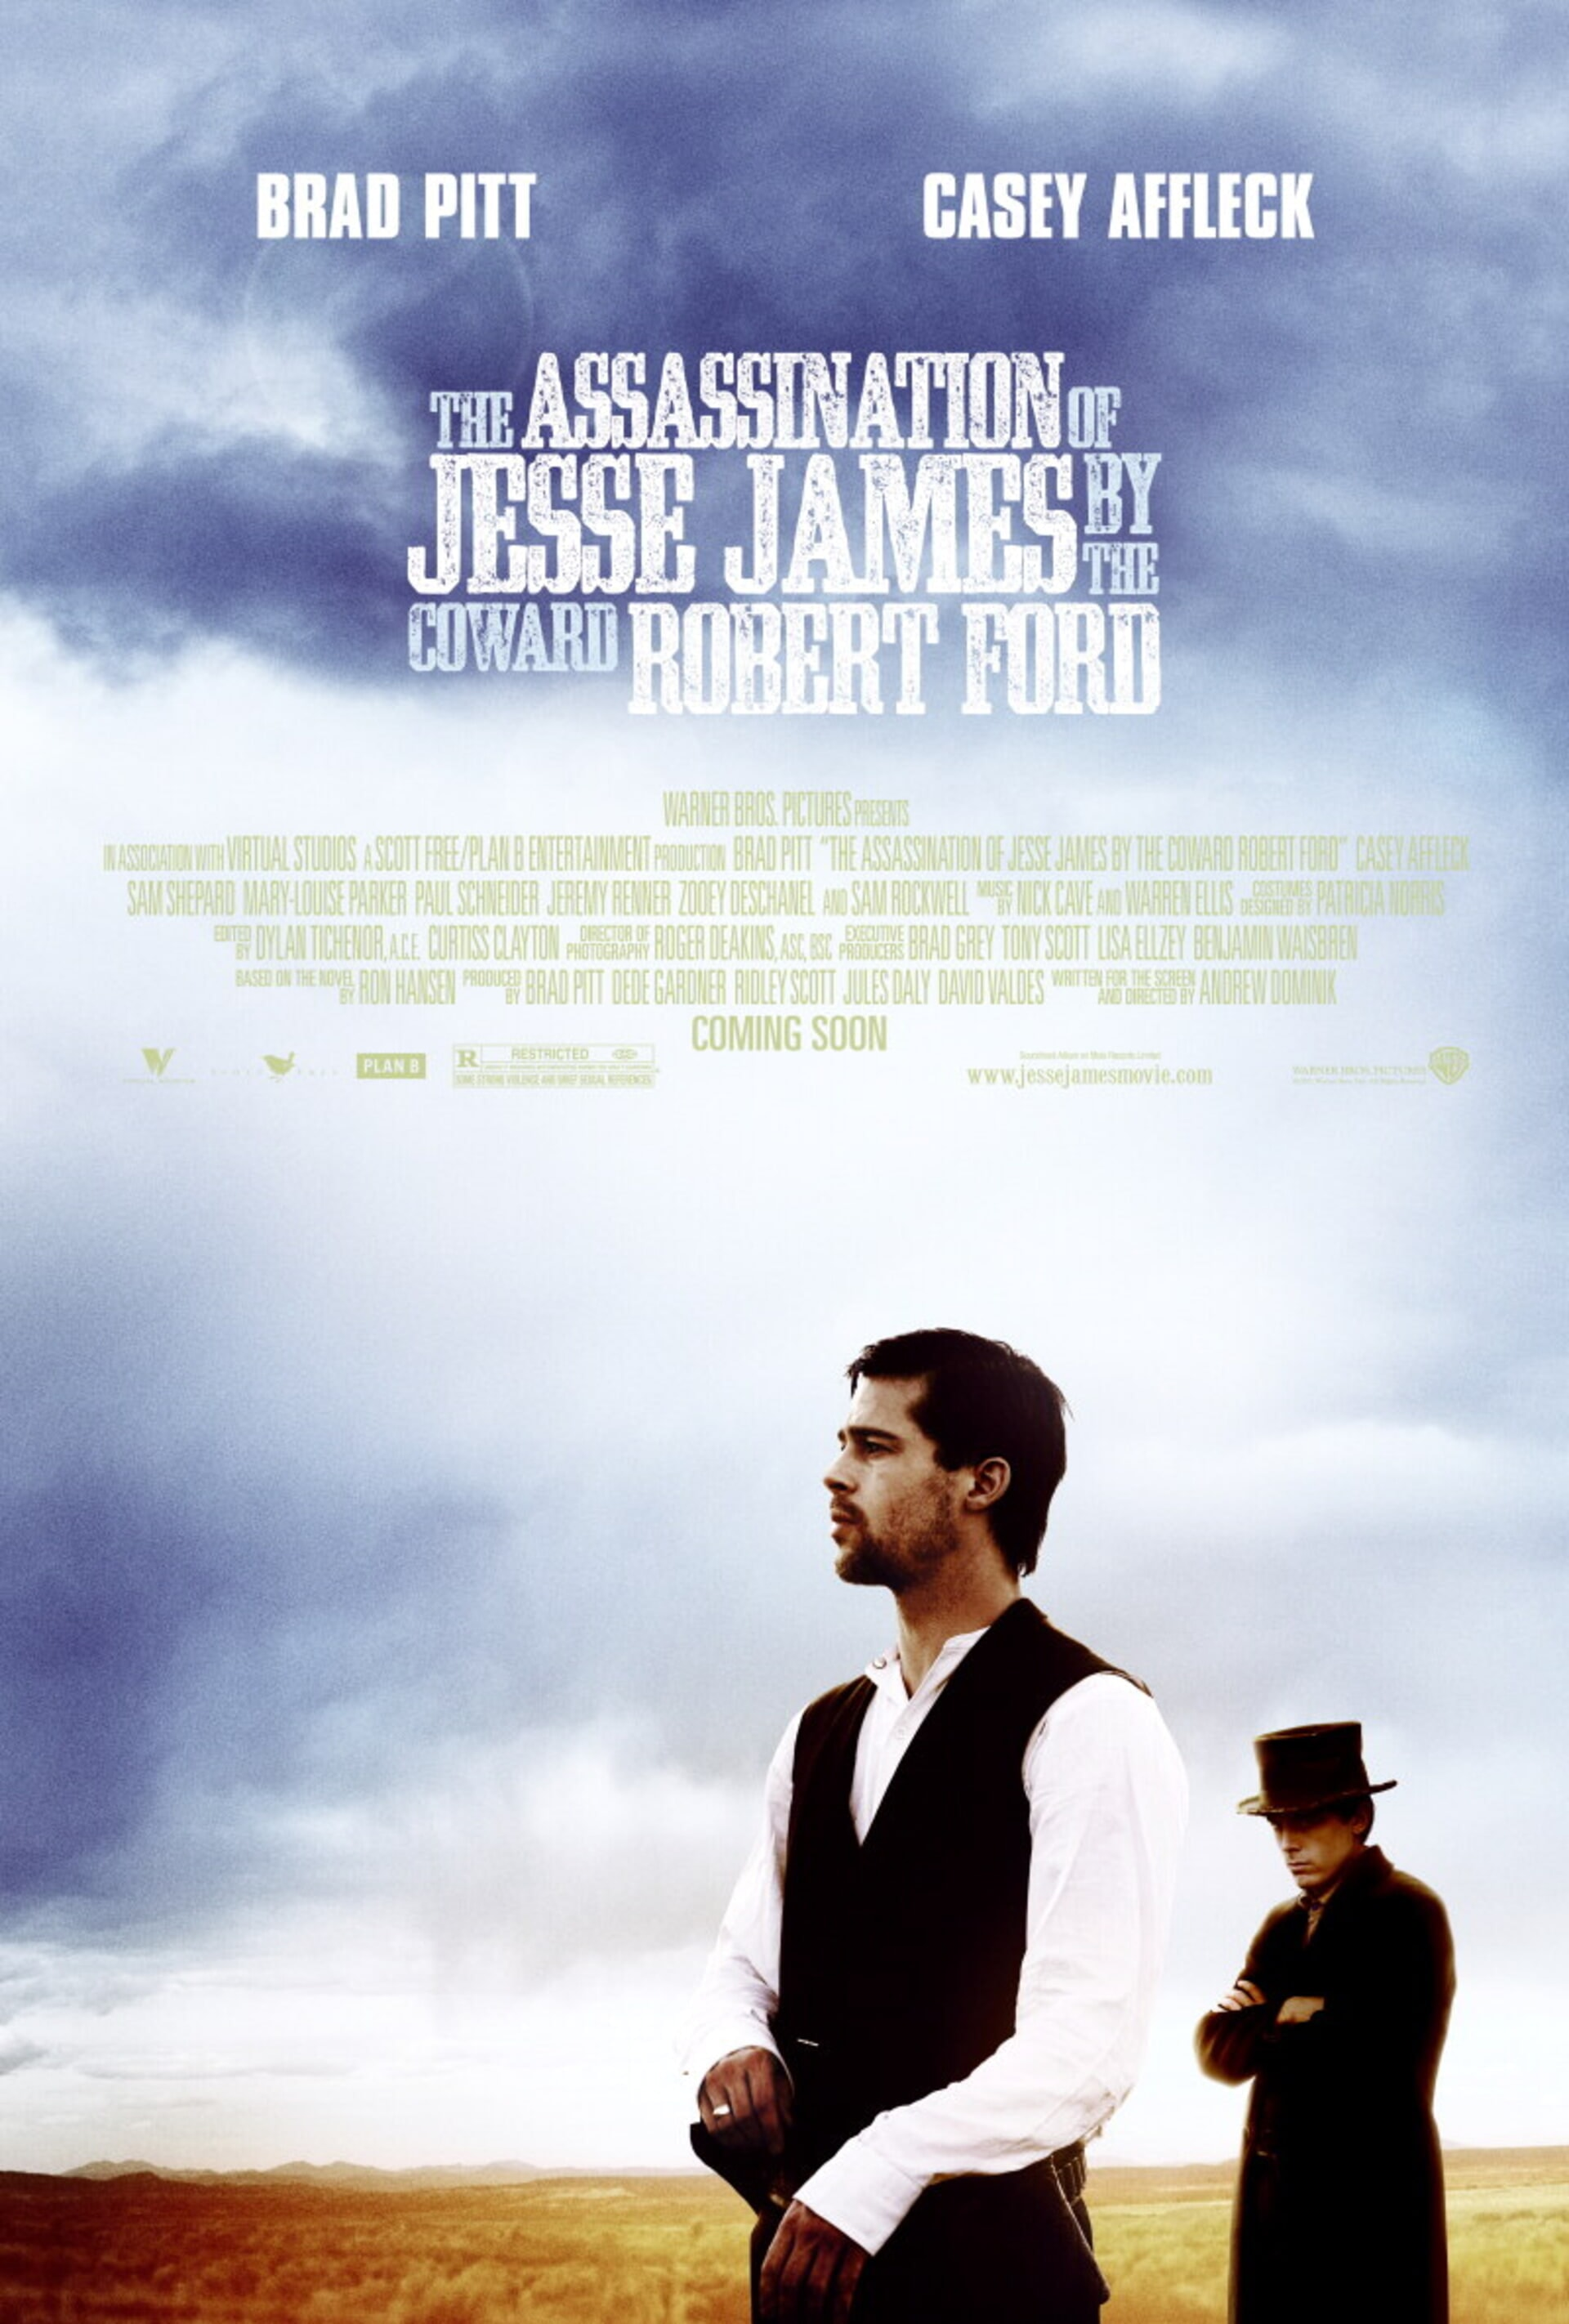 The Assassination of Jesse James by the Coward Robert Ford - Poster 1